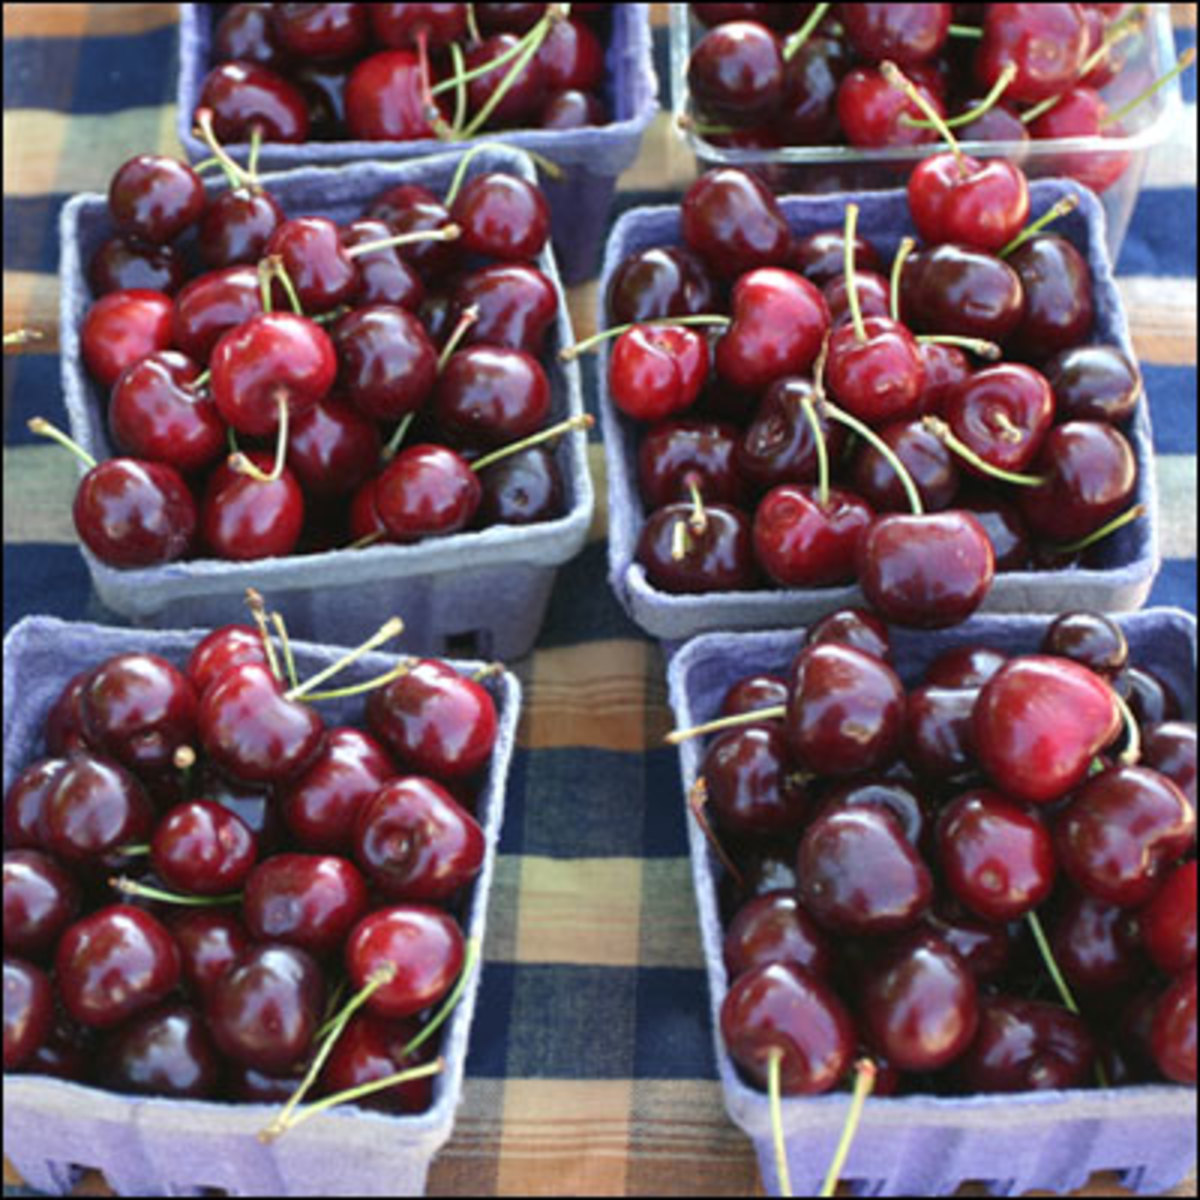 food markets are the best place to pick up fresh organic cherries whenever possible.